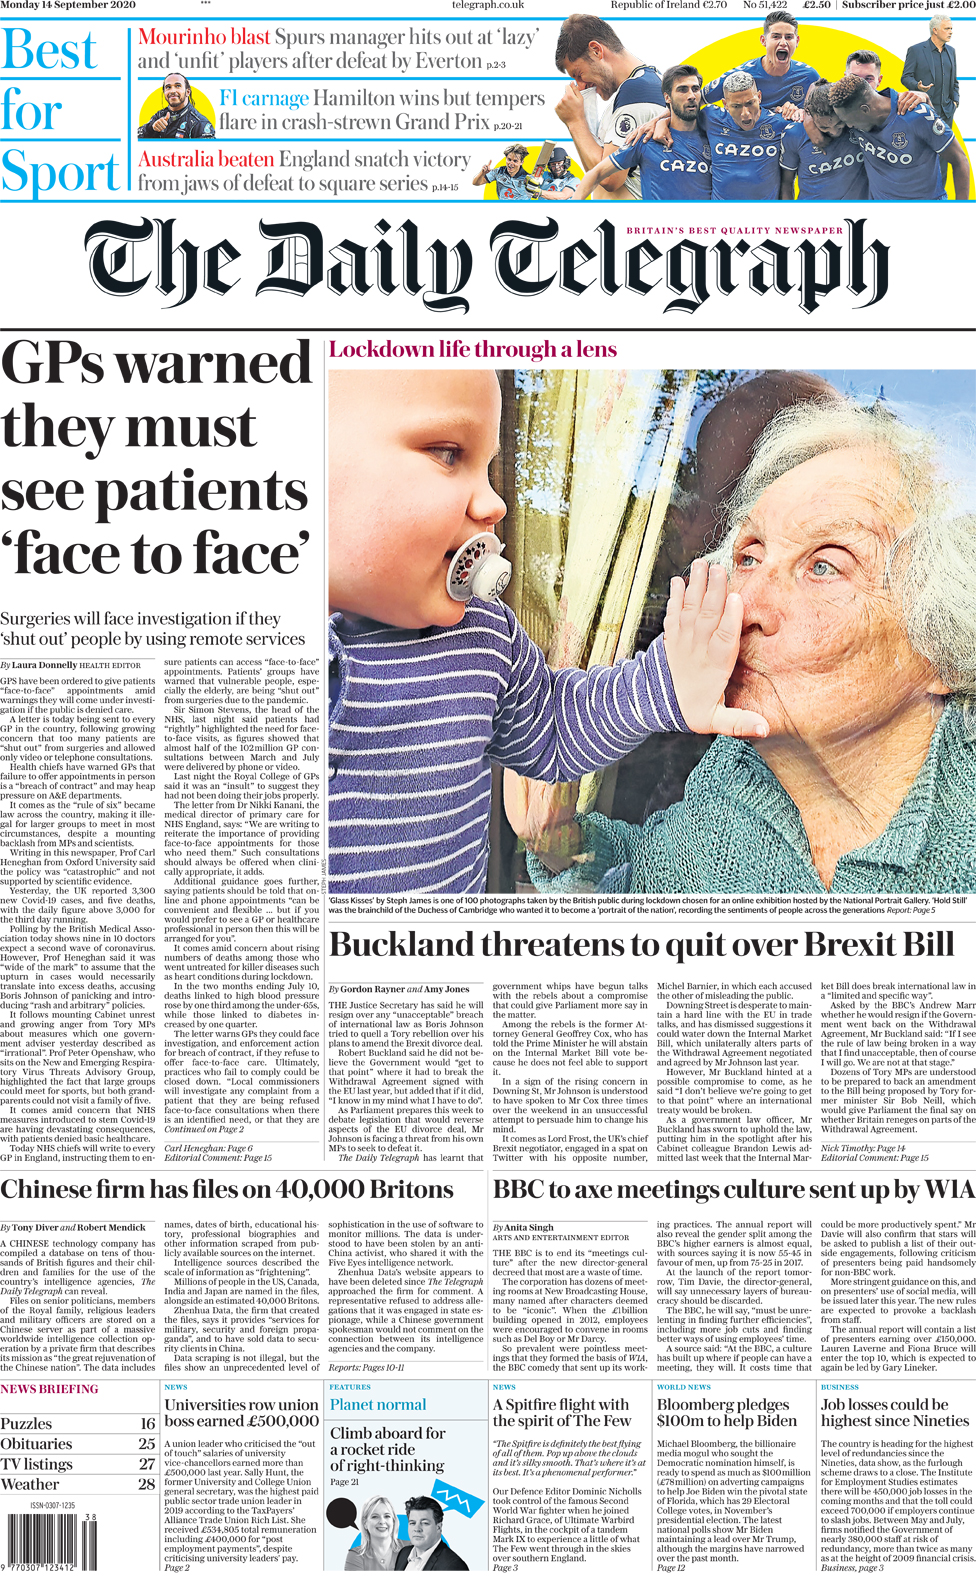 The Papers: Tory 'rebellion' and lockdown 'blow' to health thumbnail